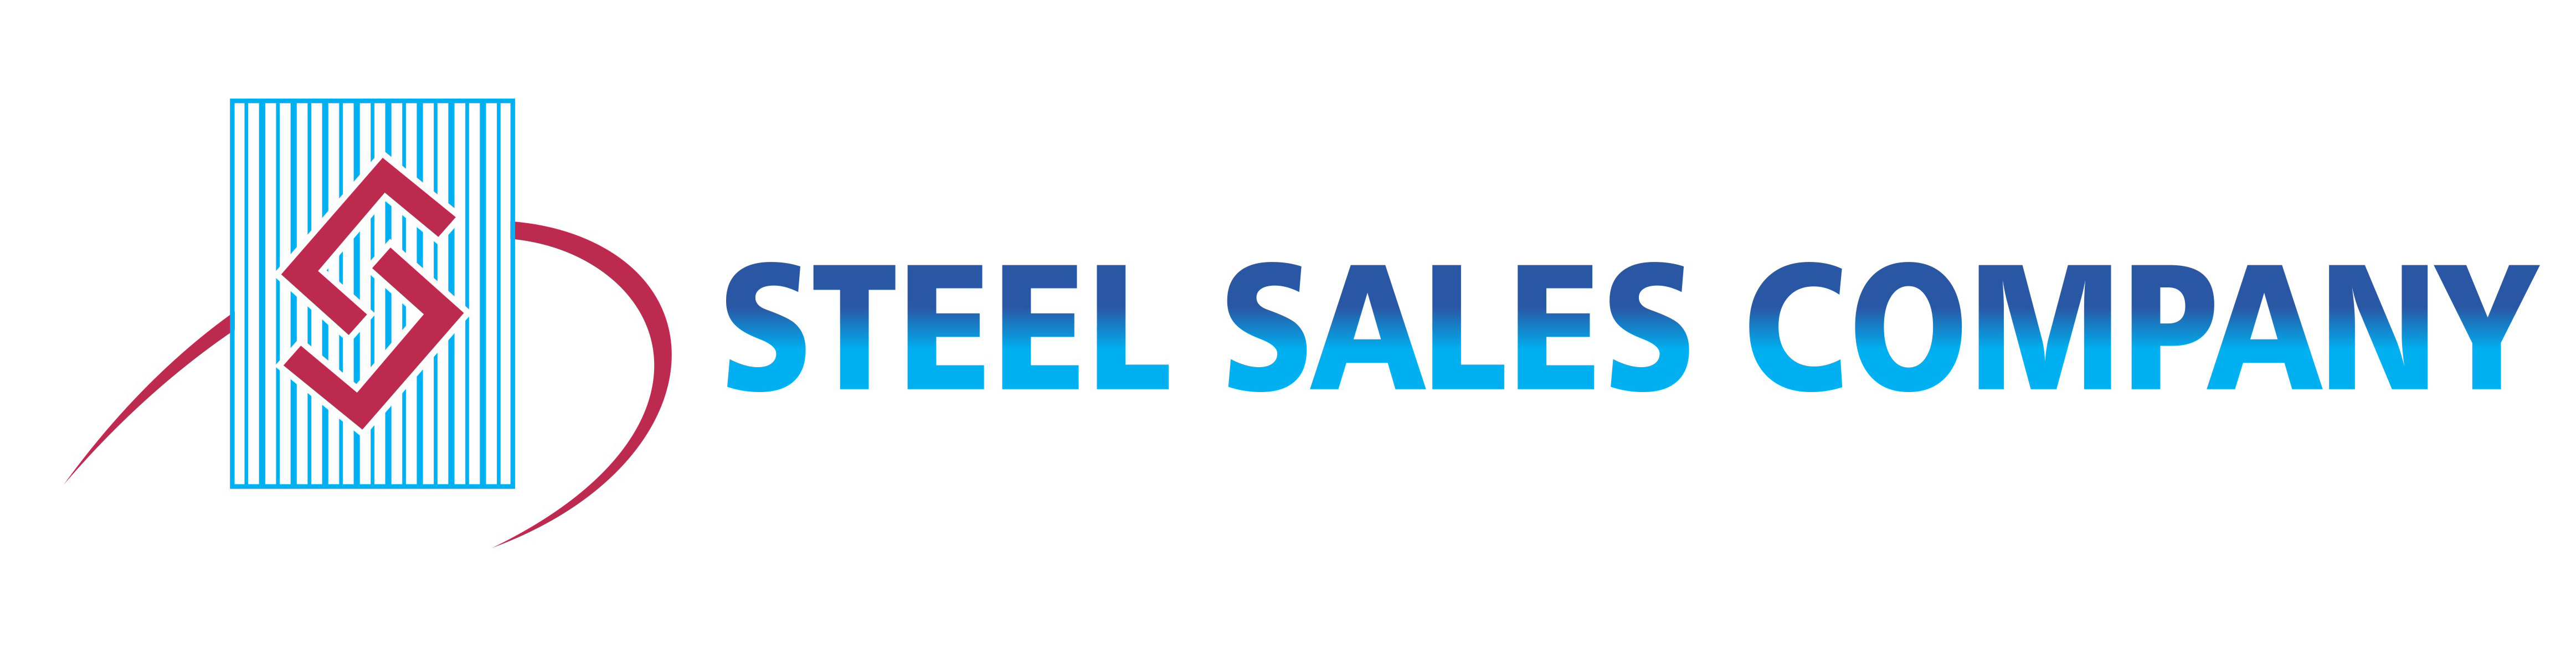 steel-sales-company